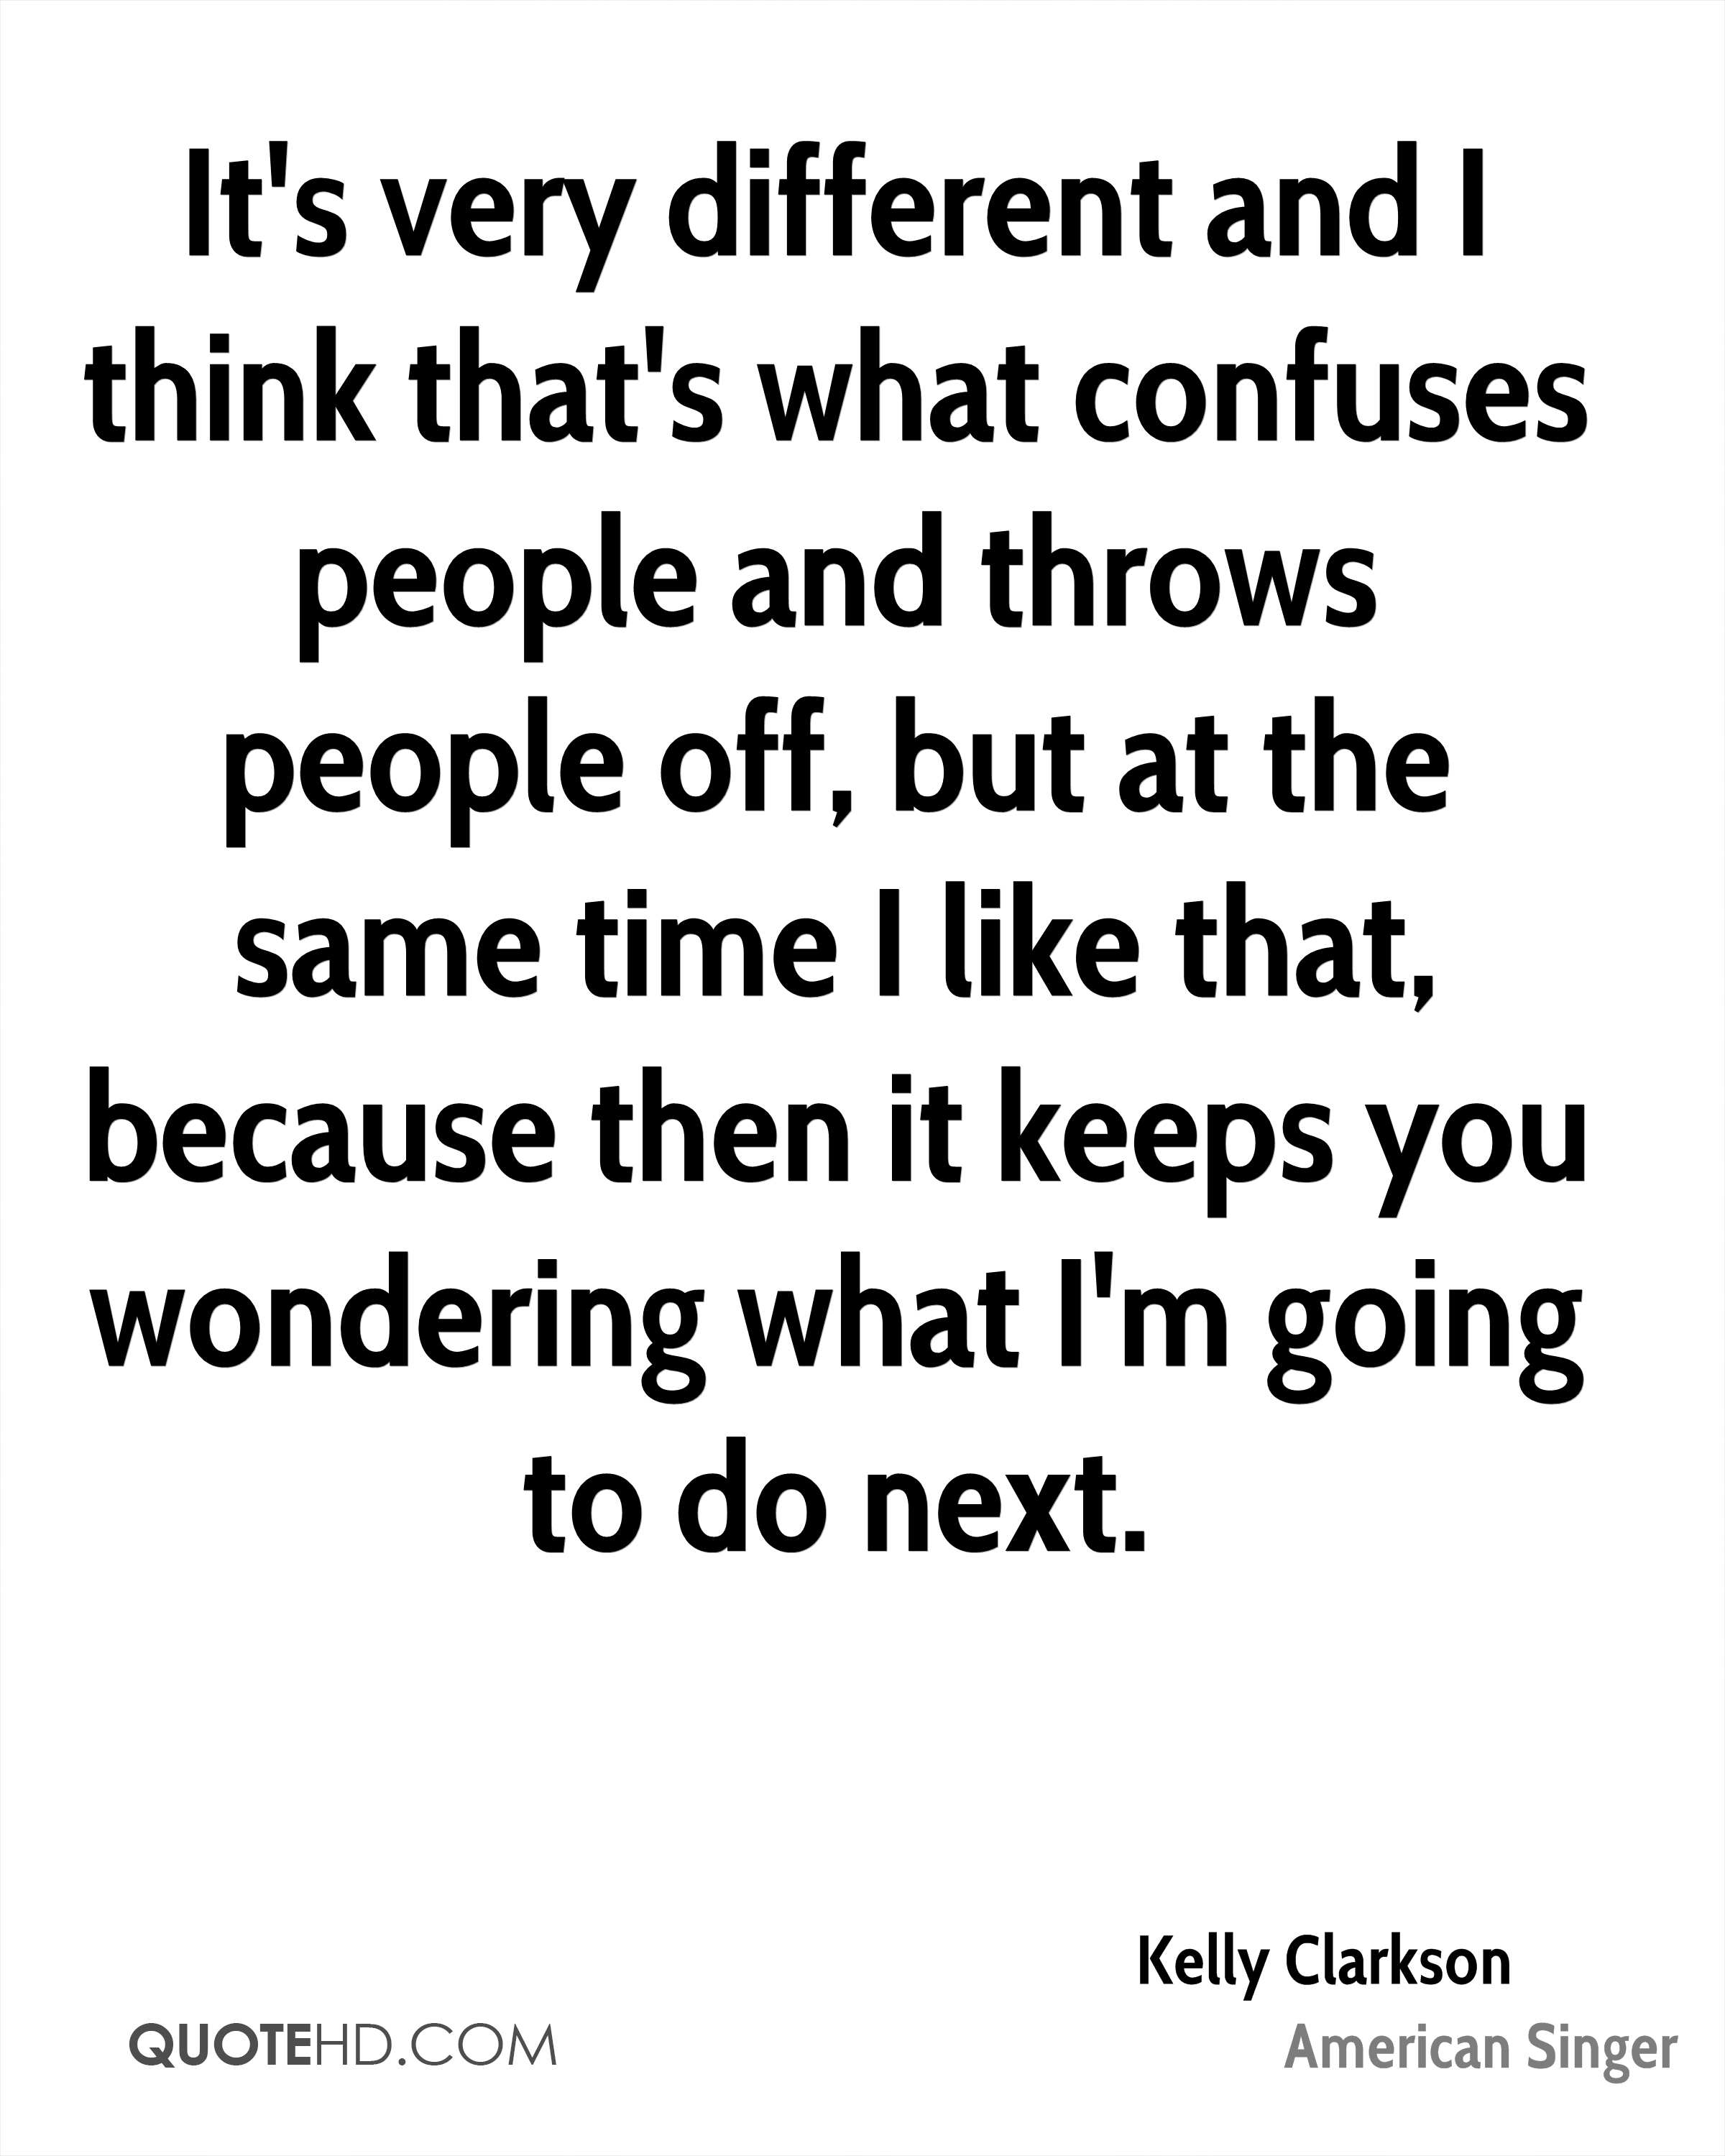 It's very different and I think that's what confuses people and throws people off, but at the same time I like that, because then it keeps you wondering what I'm going to do next.